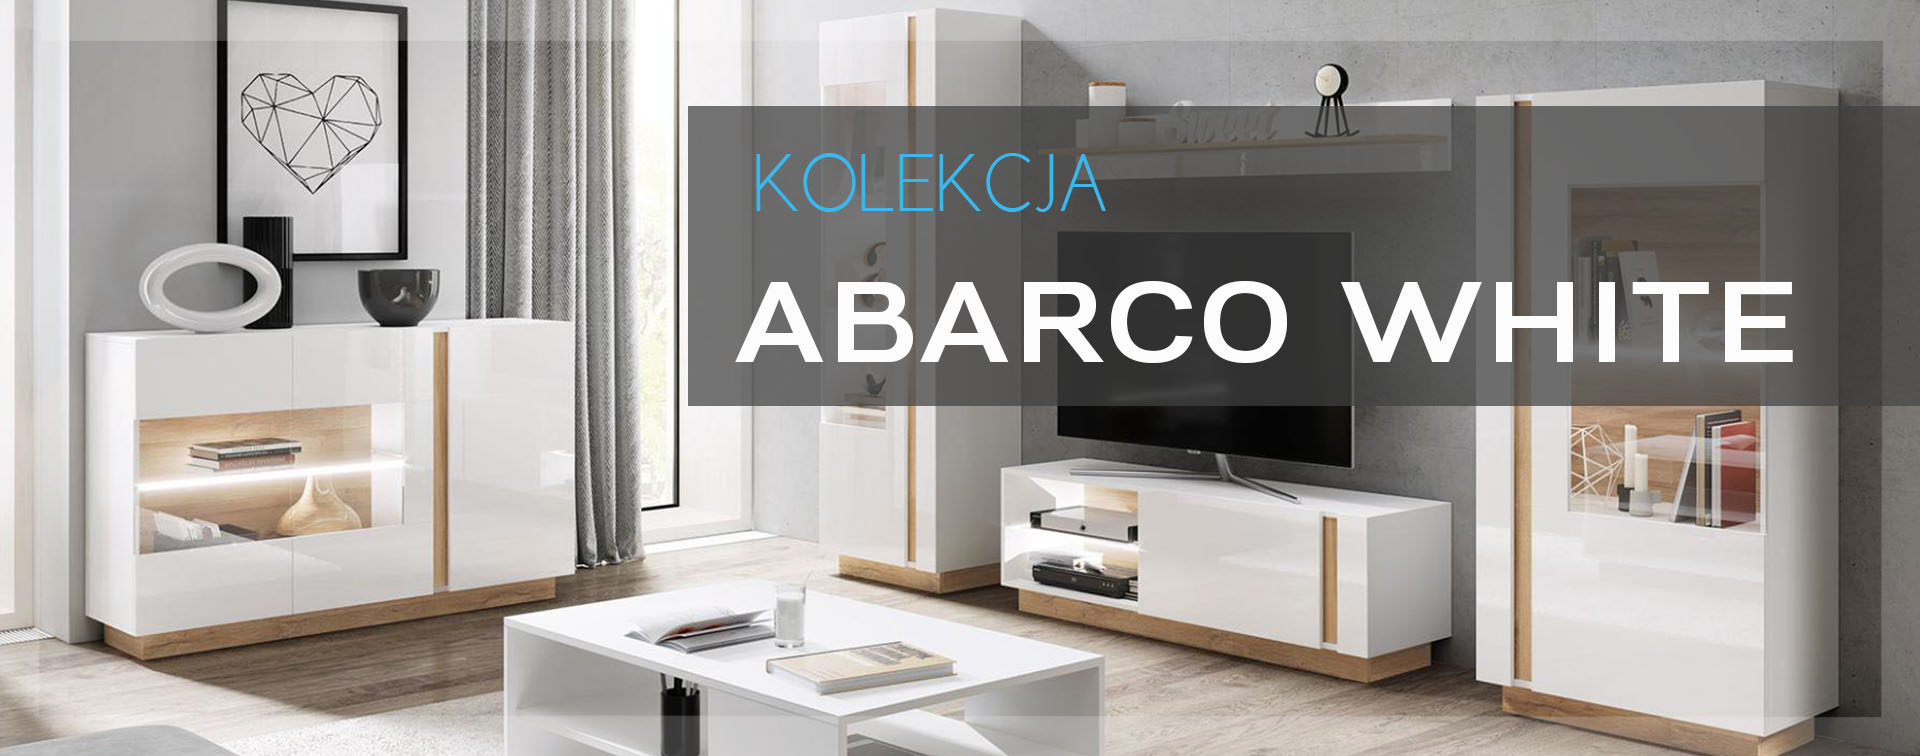 Abarco white